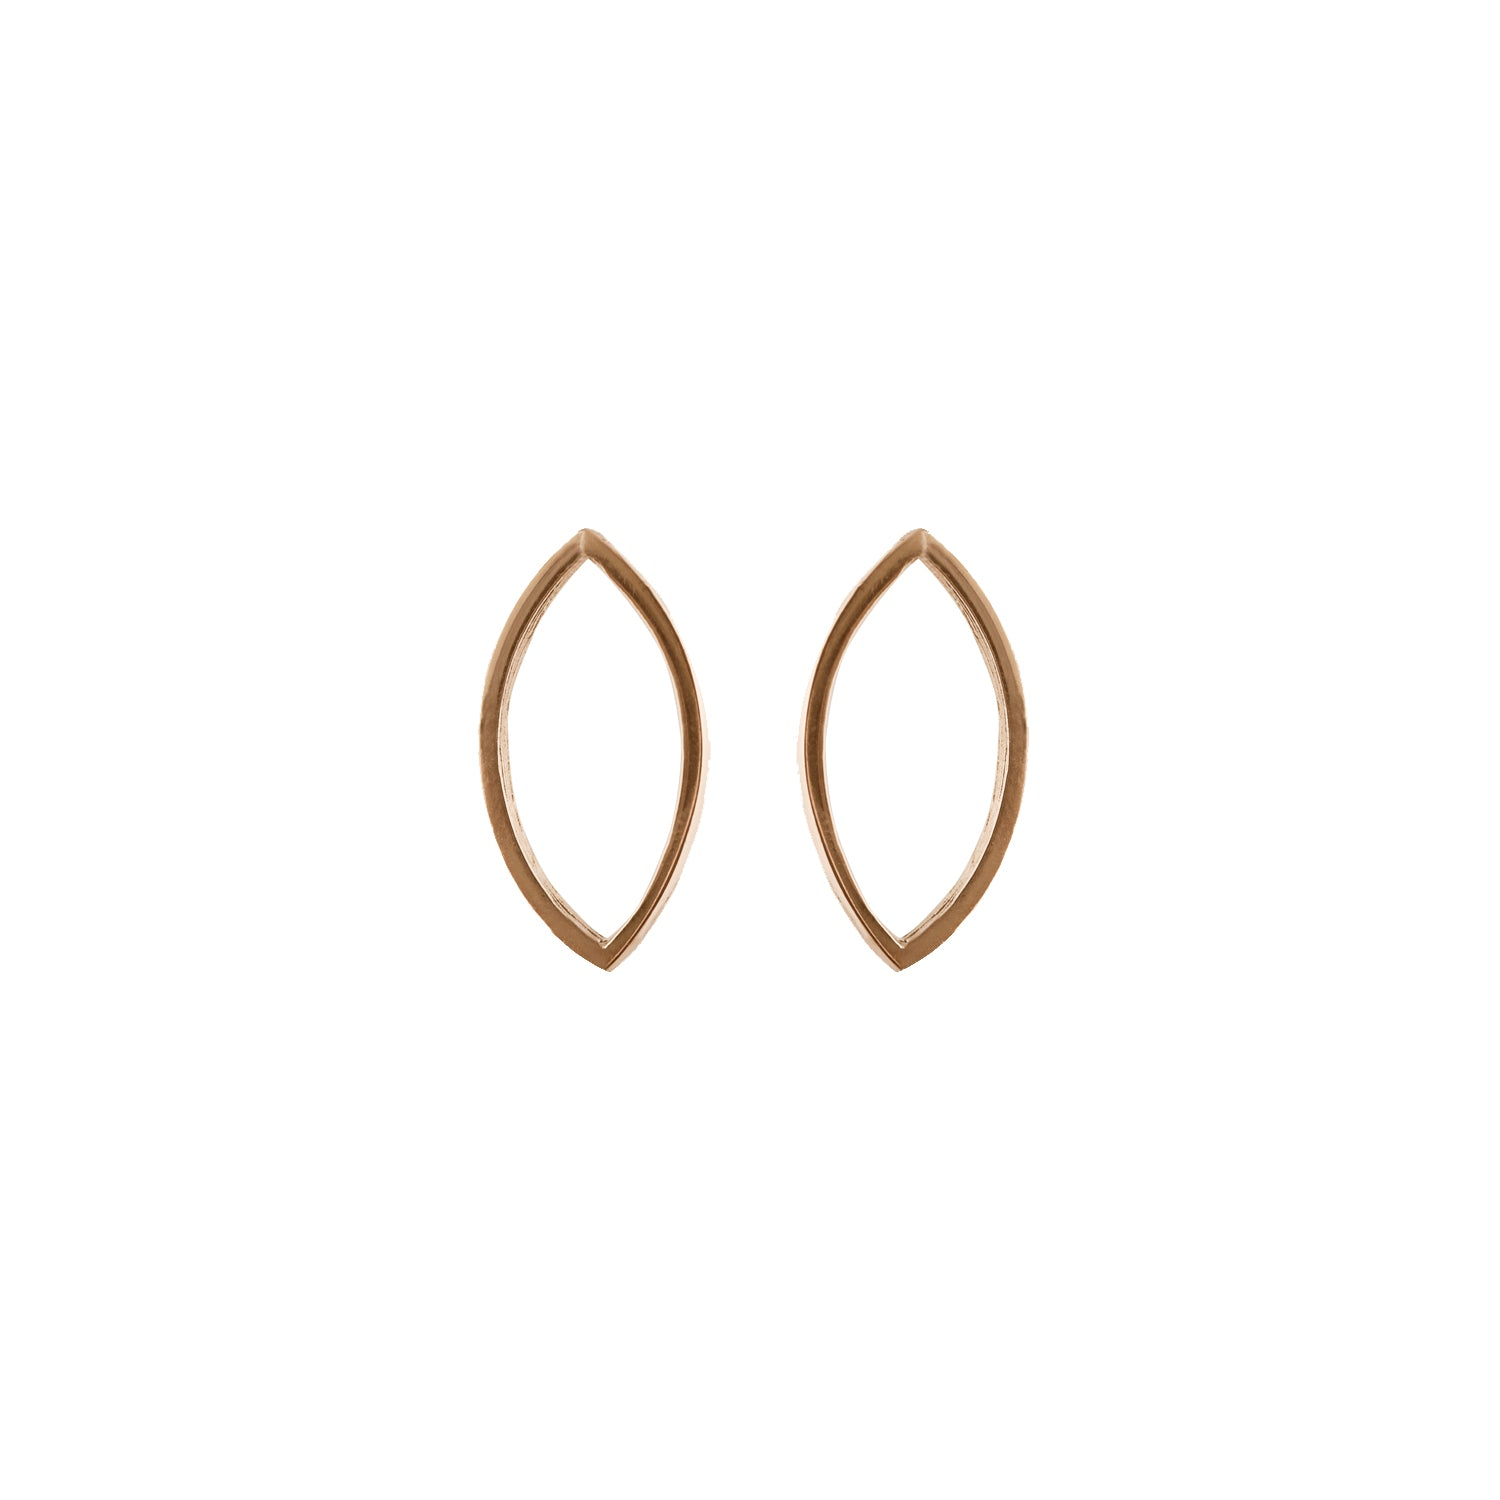 Marquise Slice Earrings in 14 Carat Gold